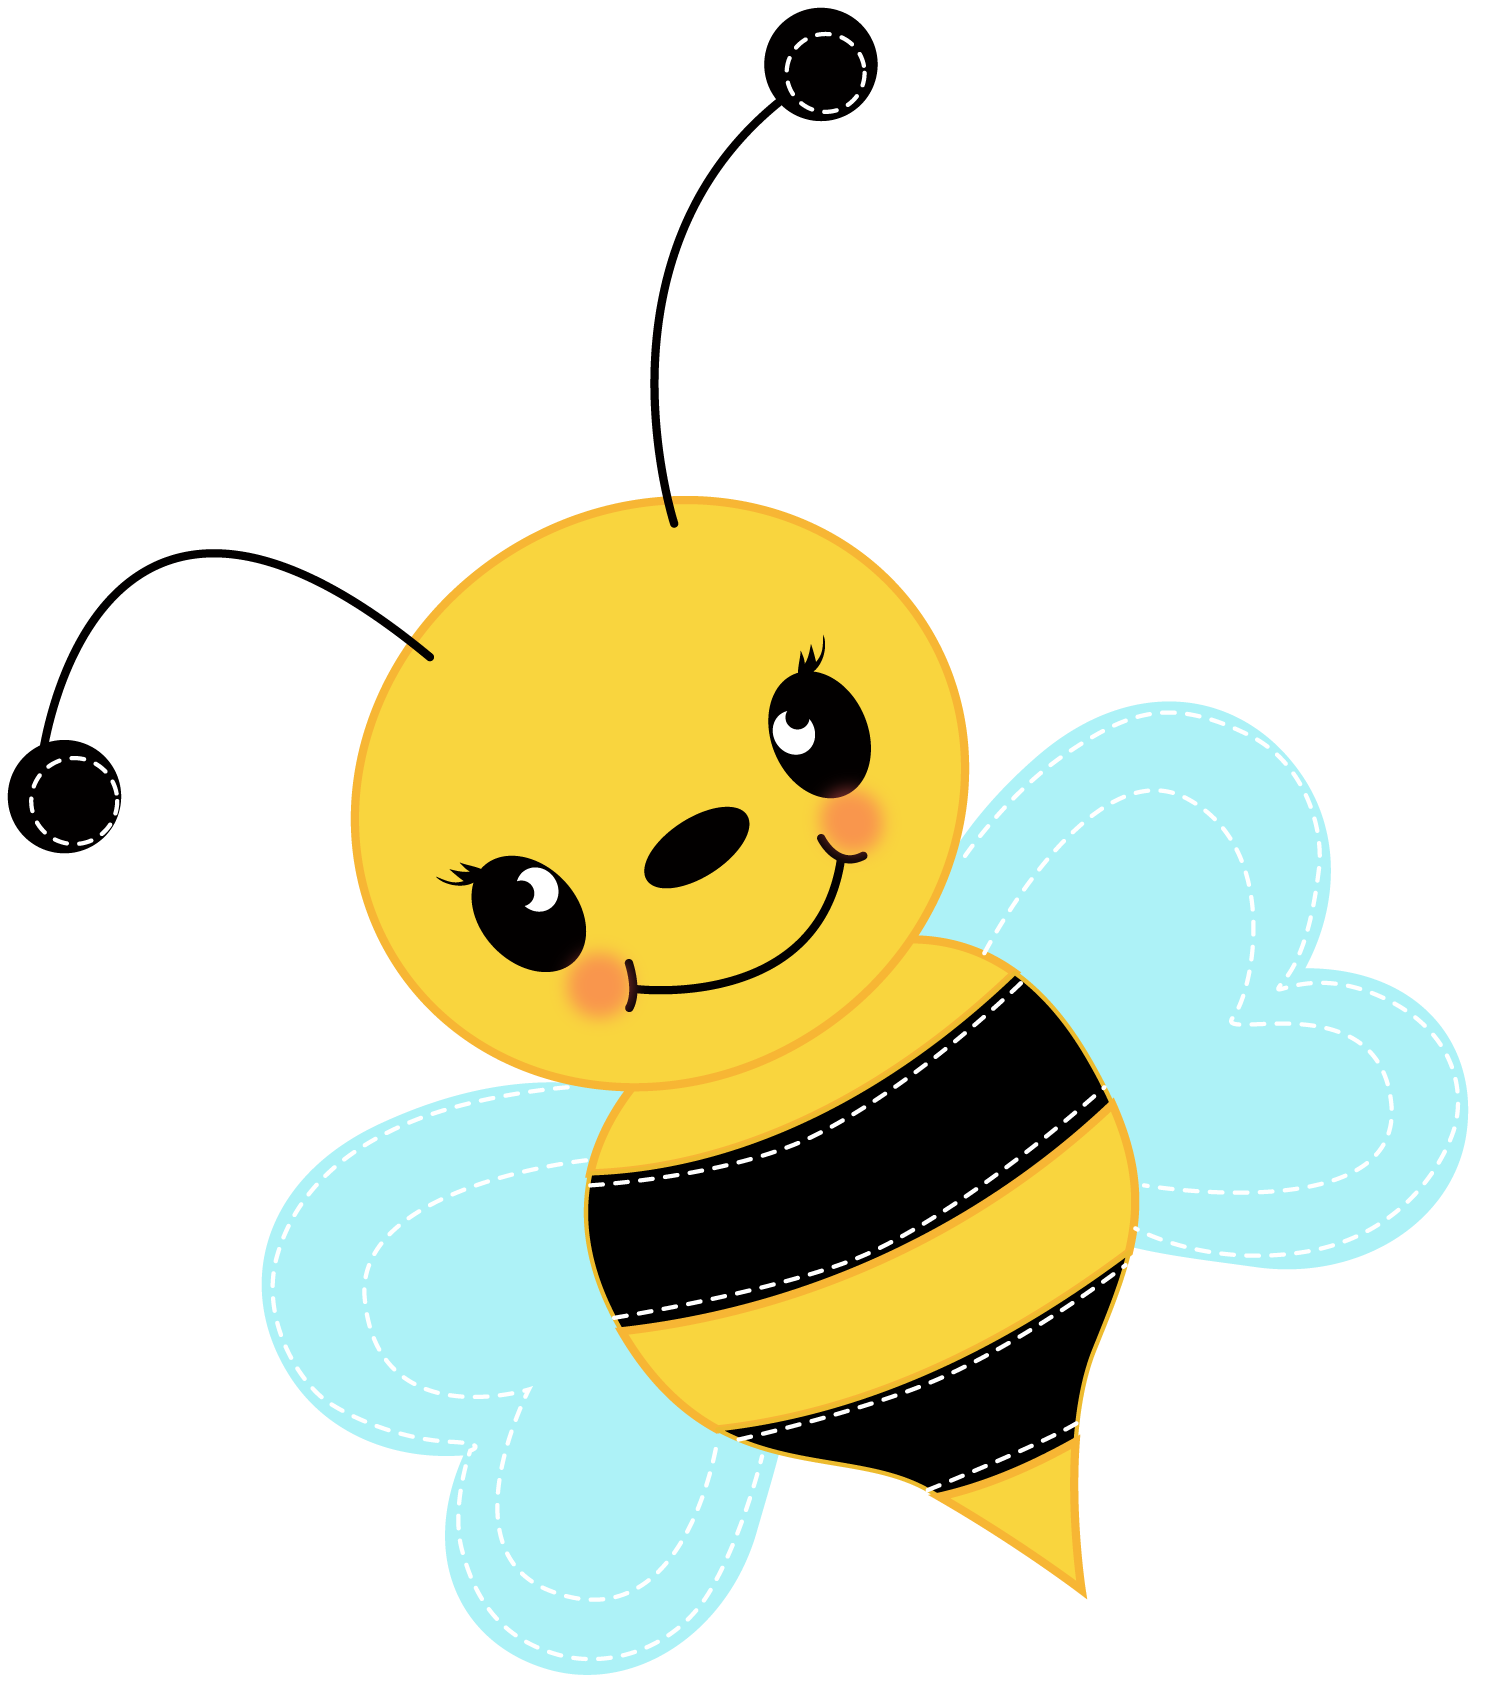 Cute baby panda free. Bumblebee clipart busy bee